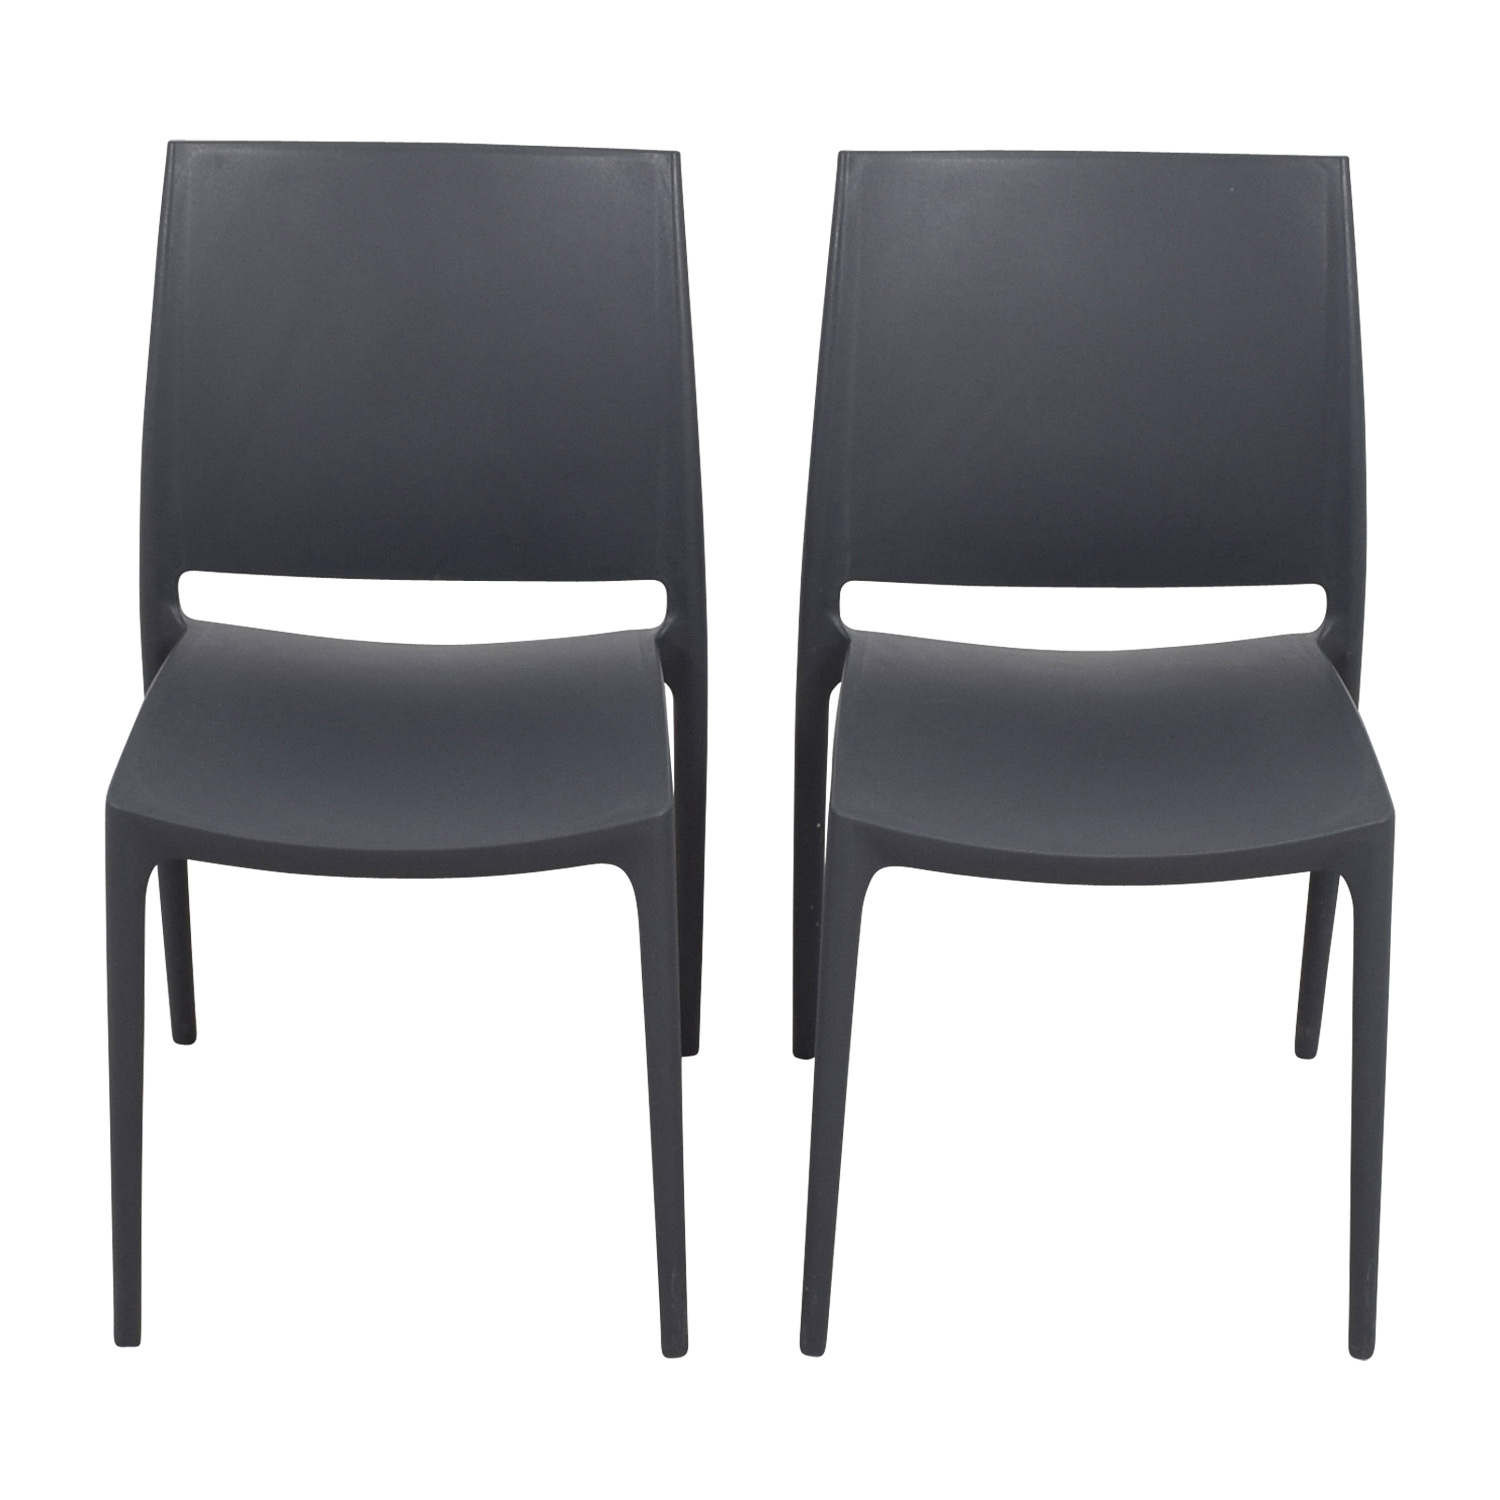 87 Off Grey Molded Plastic Chairs Chairs